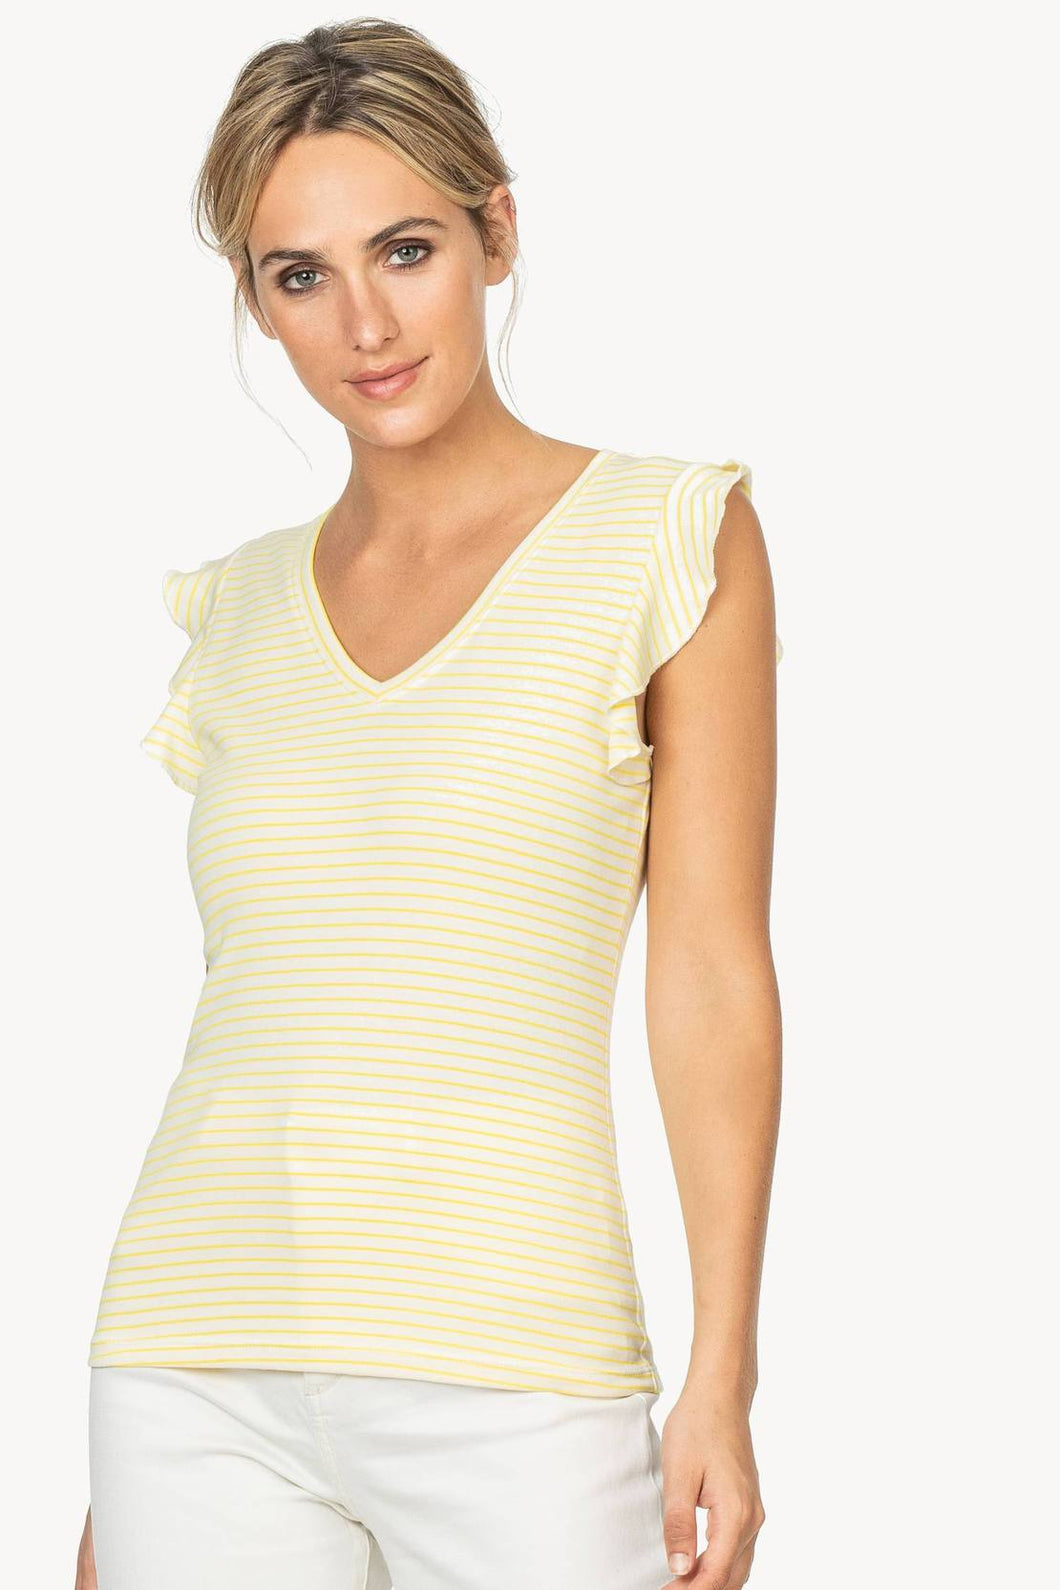 Ruffle Sleeve V-Neck - Lemon Stripe